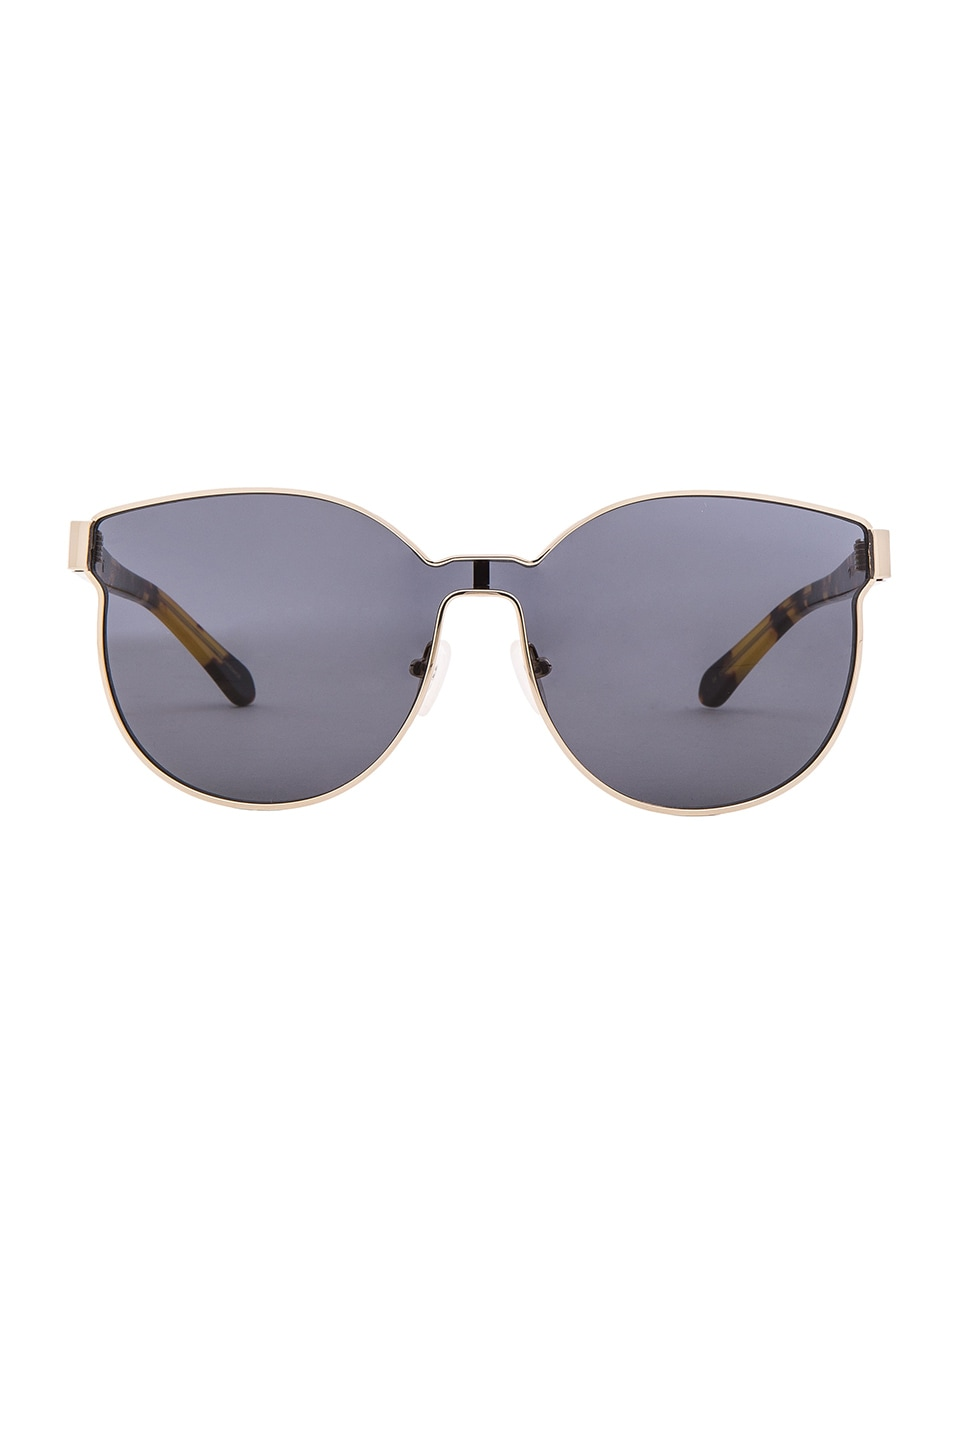 Karen Walker Star Sailor in Gold & Crazy Tort